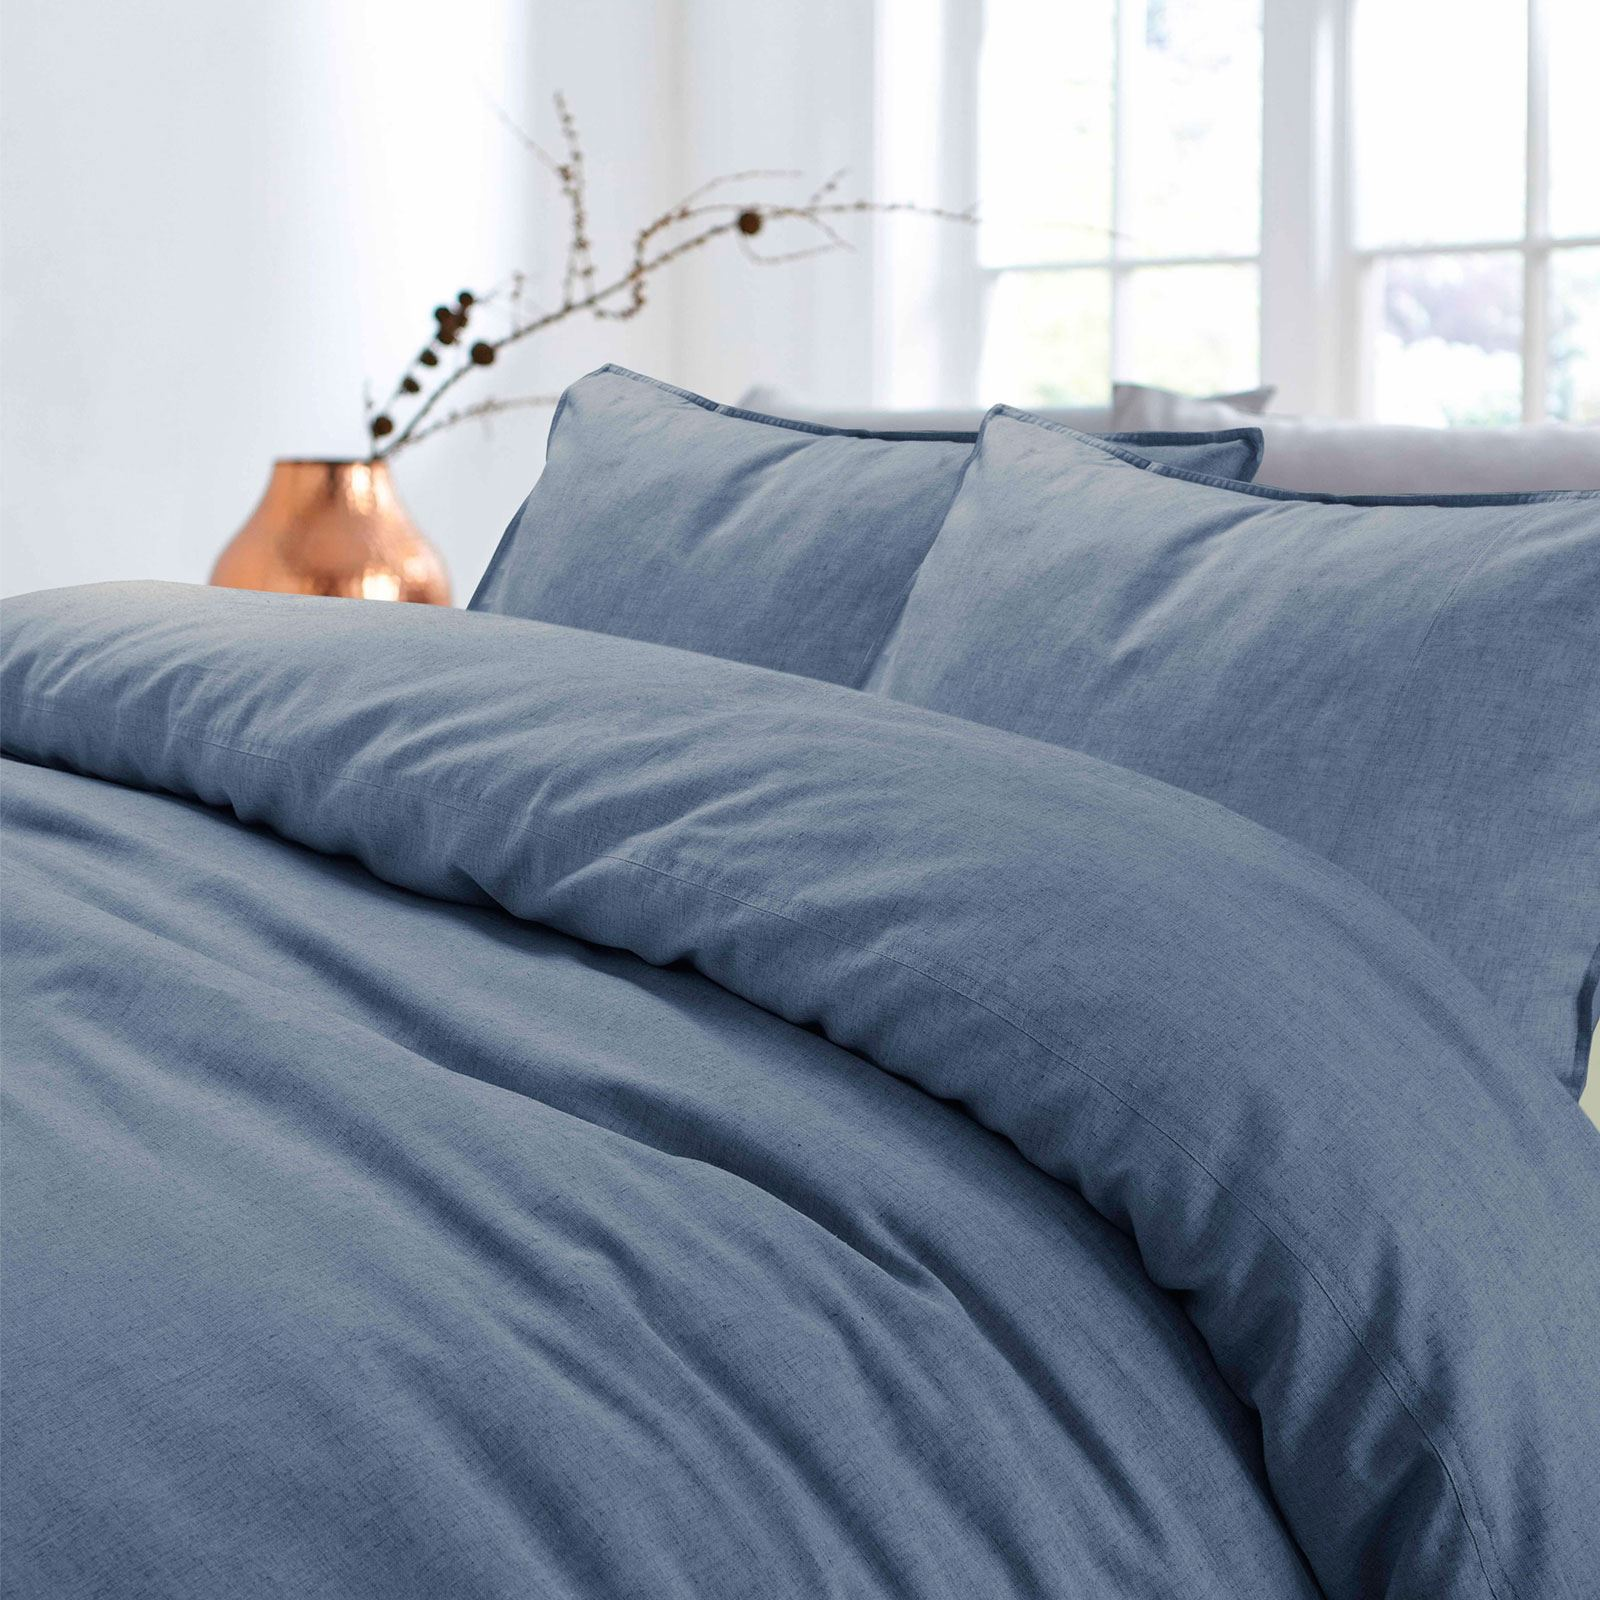 100-Cotton-Linen-Pure-Natural-Duvet-Cover-Bedding-Set-Double-King-Single thumbnail 10